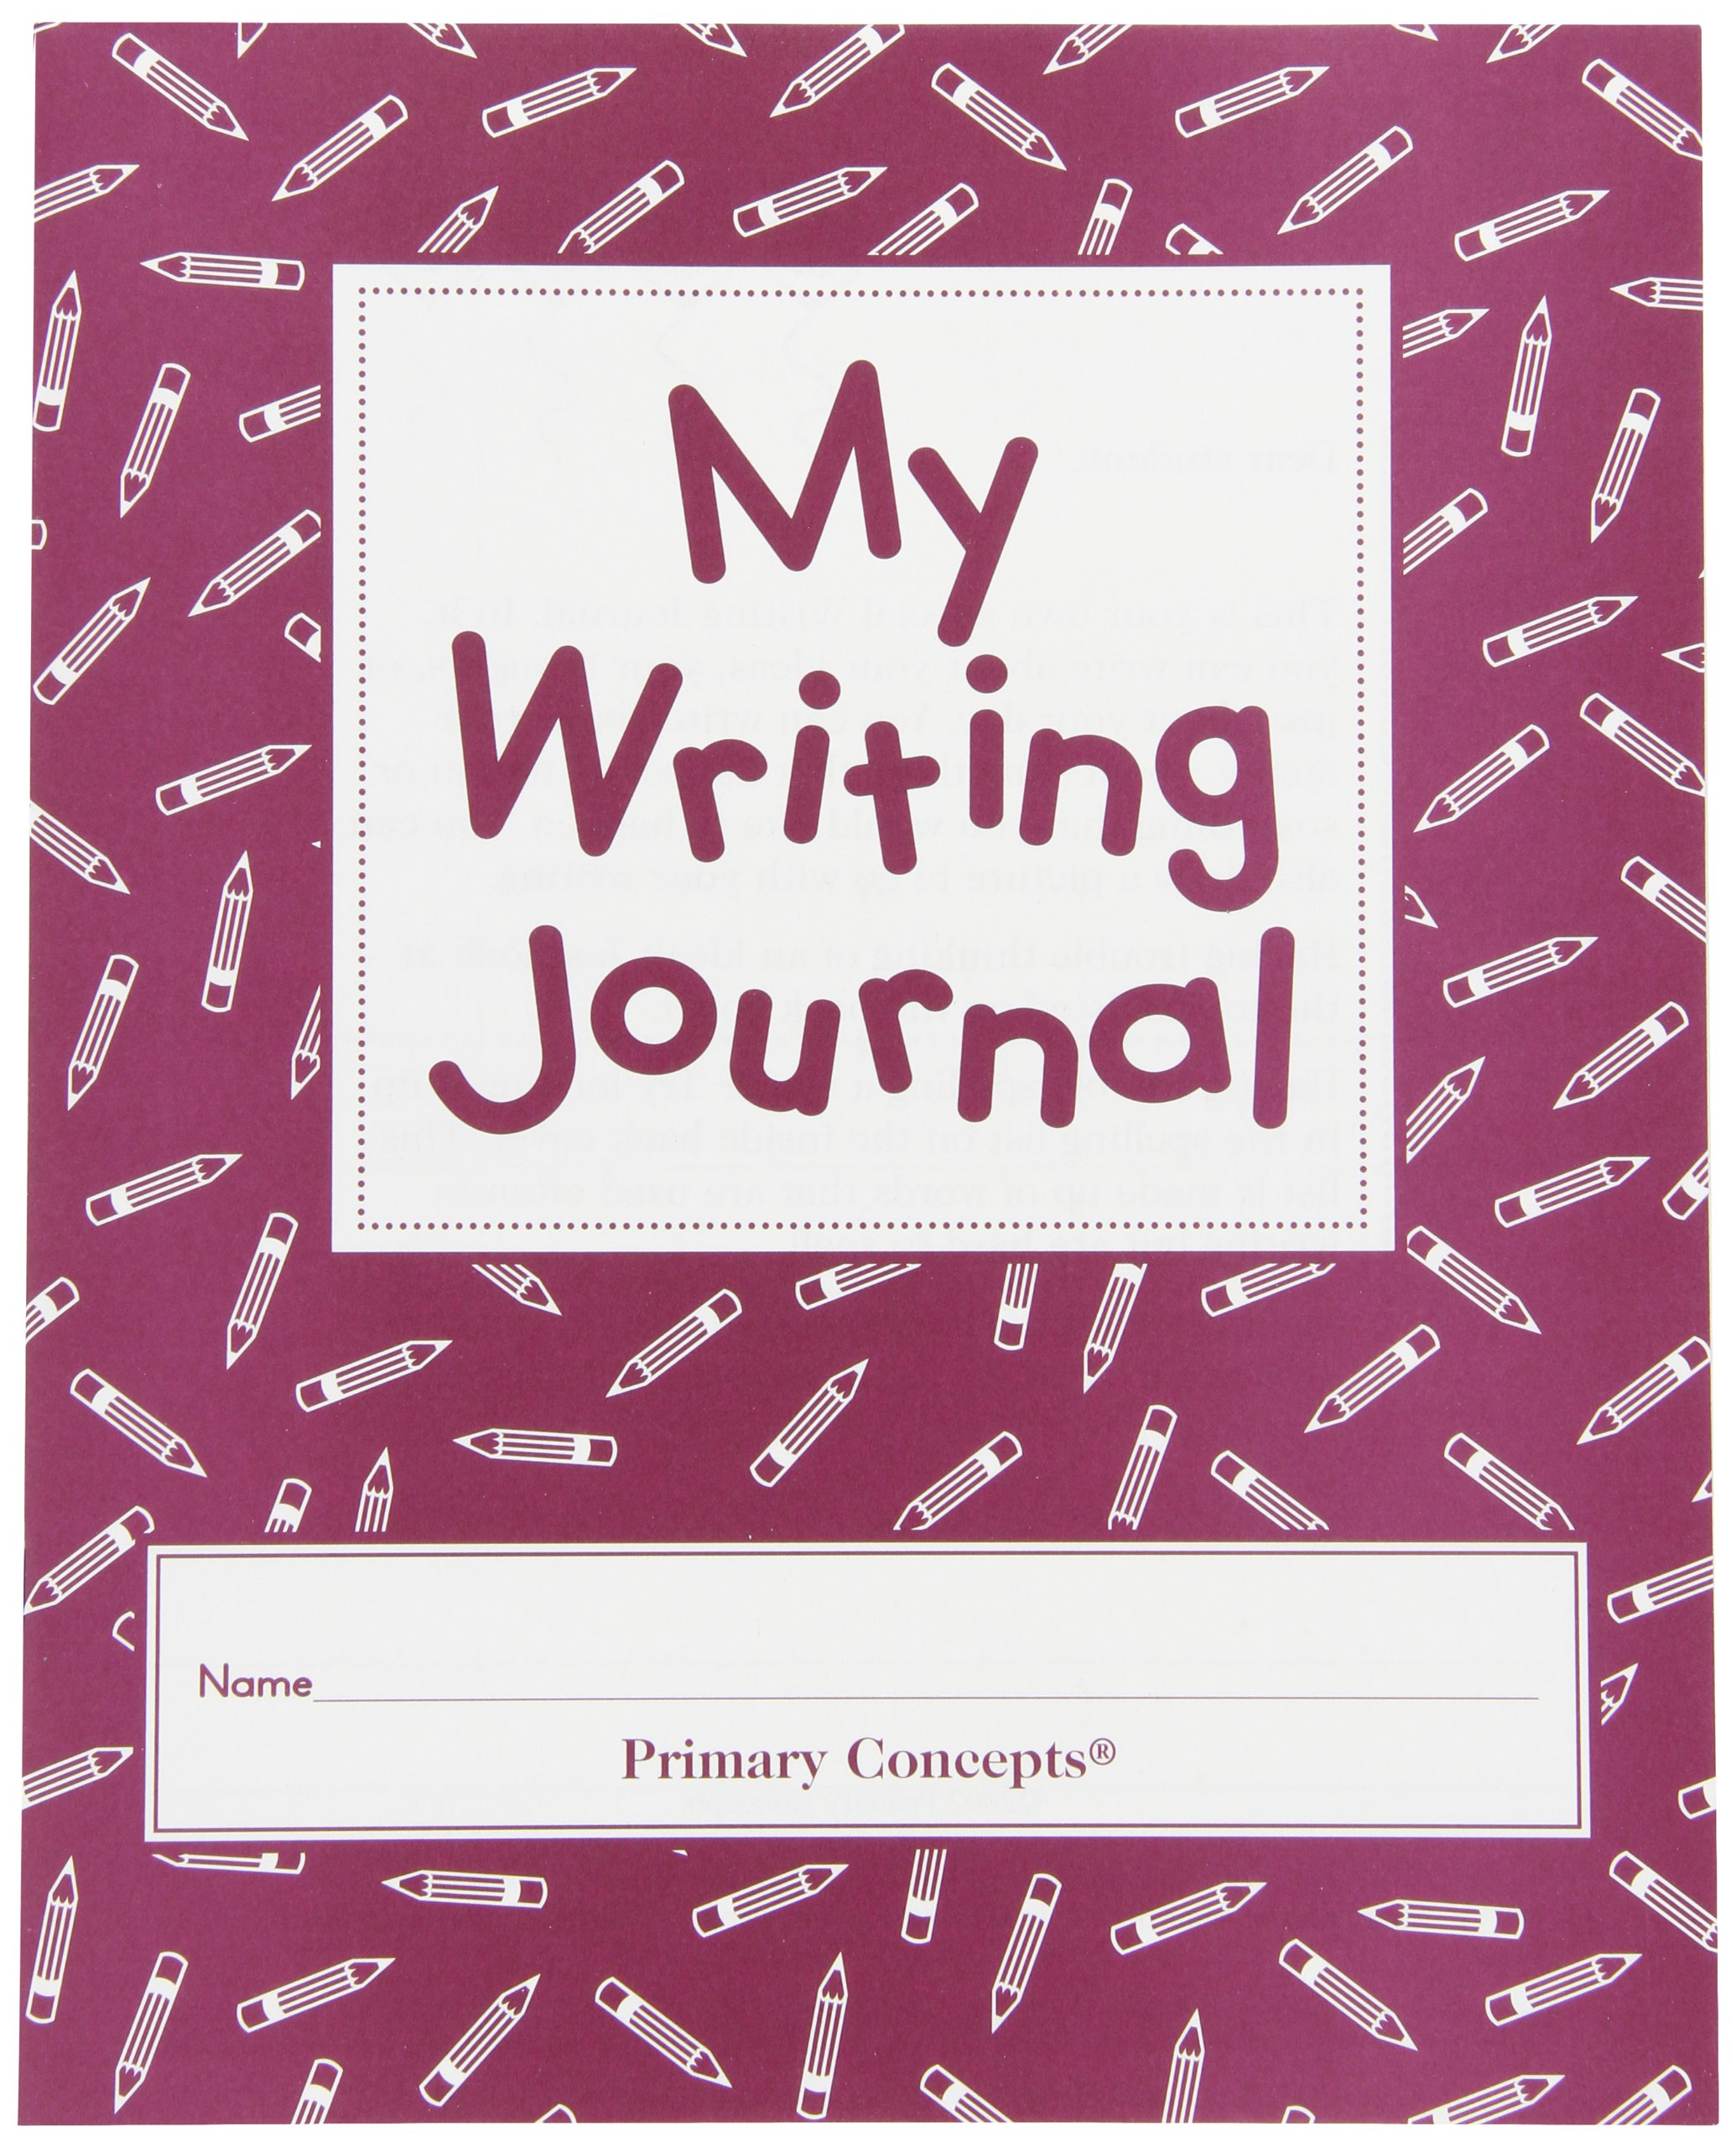 Primary Concepts My Writing Journal - W1267 by Primary Concepts,